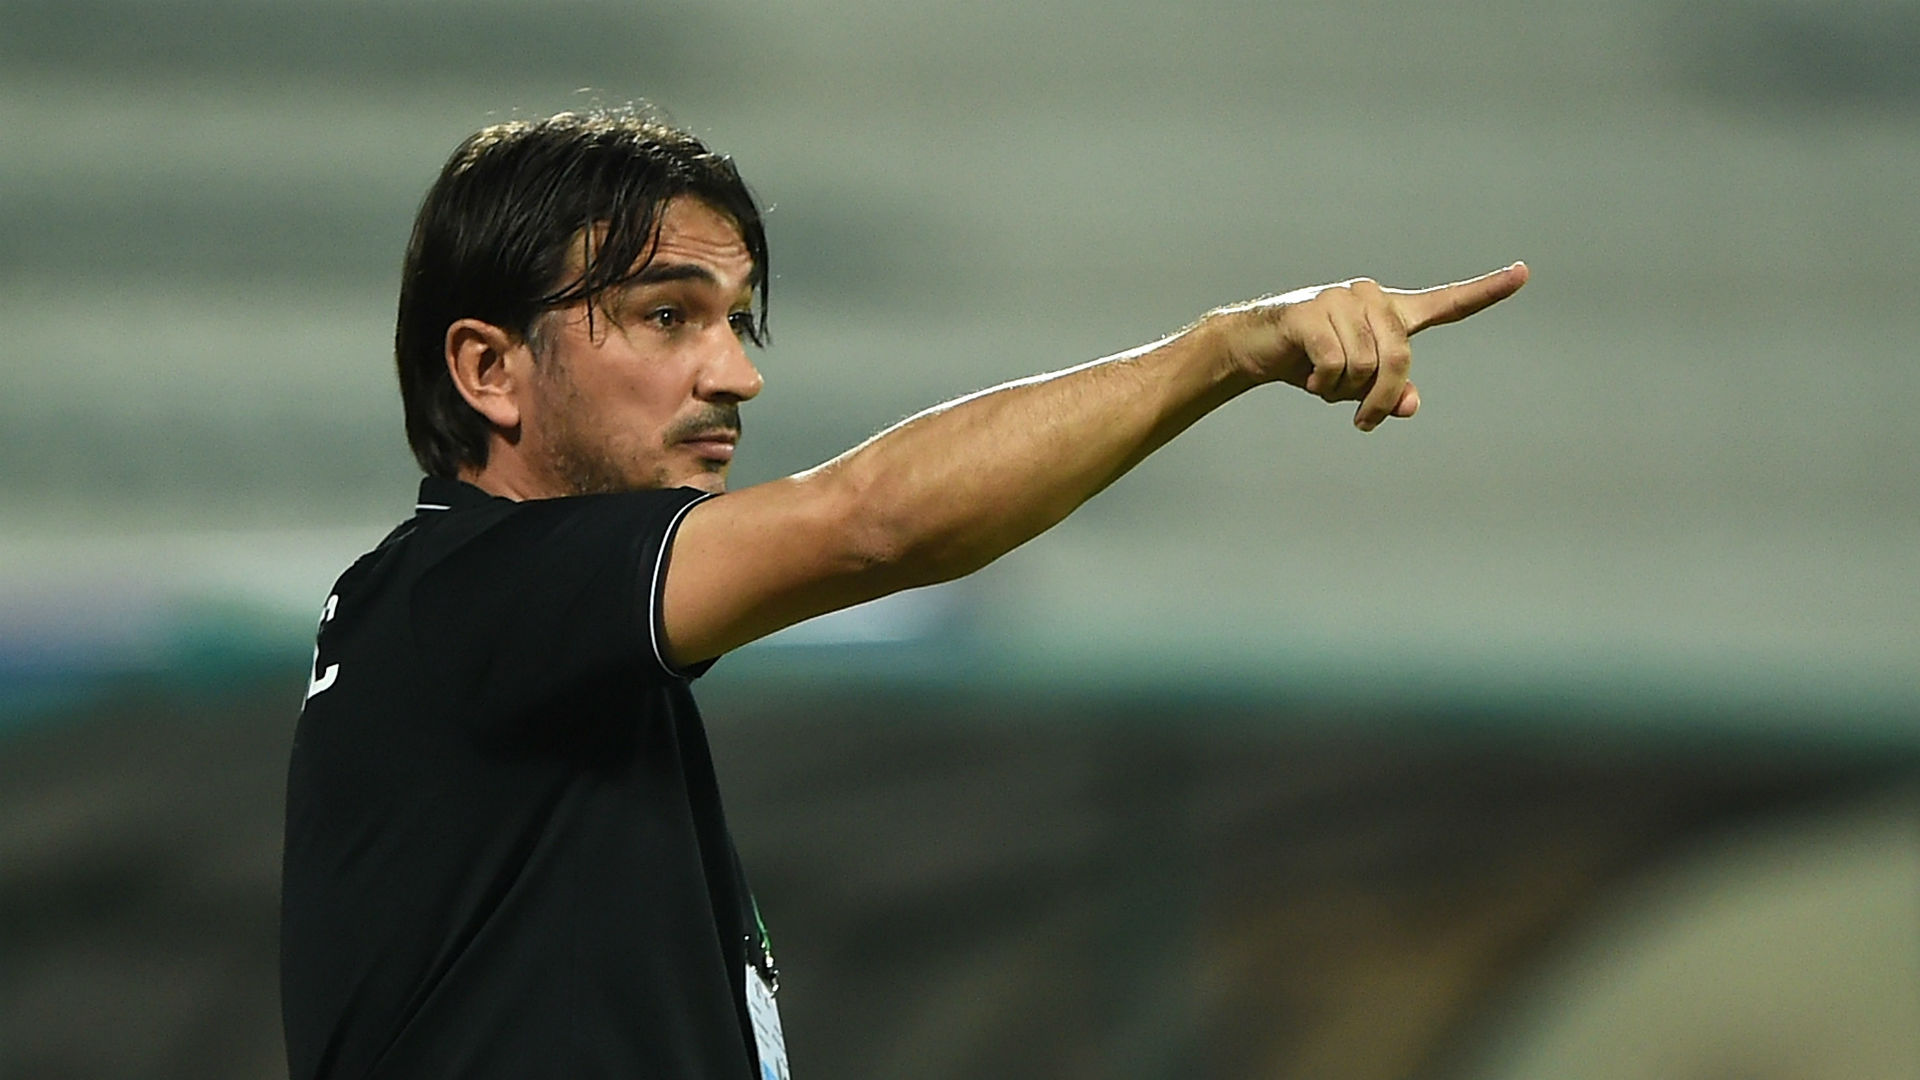 Cacic went to Croatia, instead came Dalic